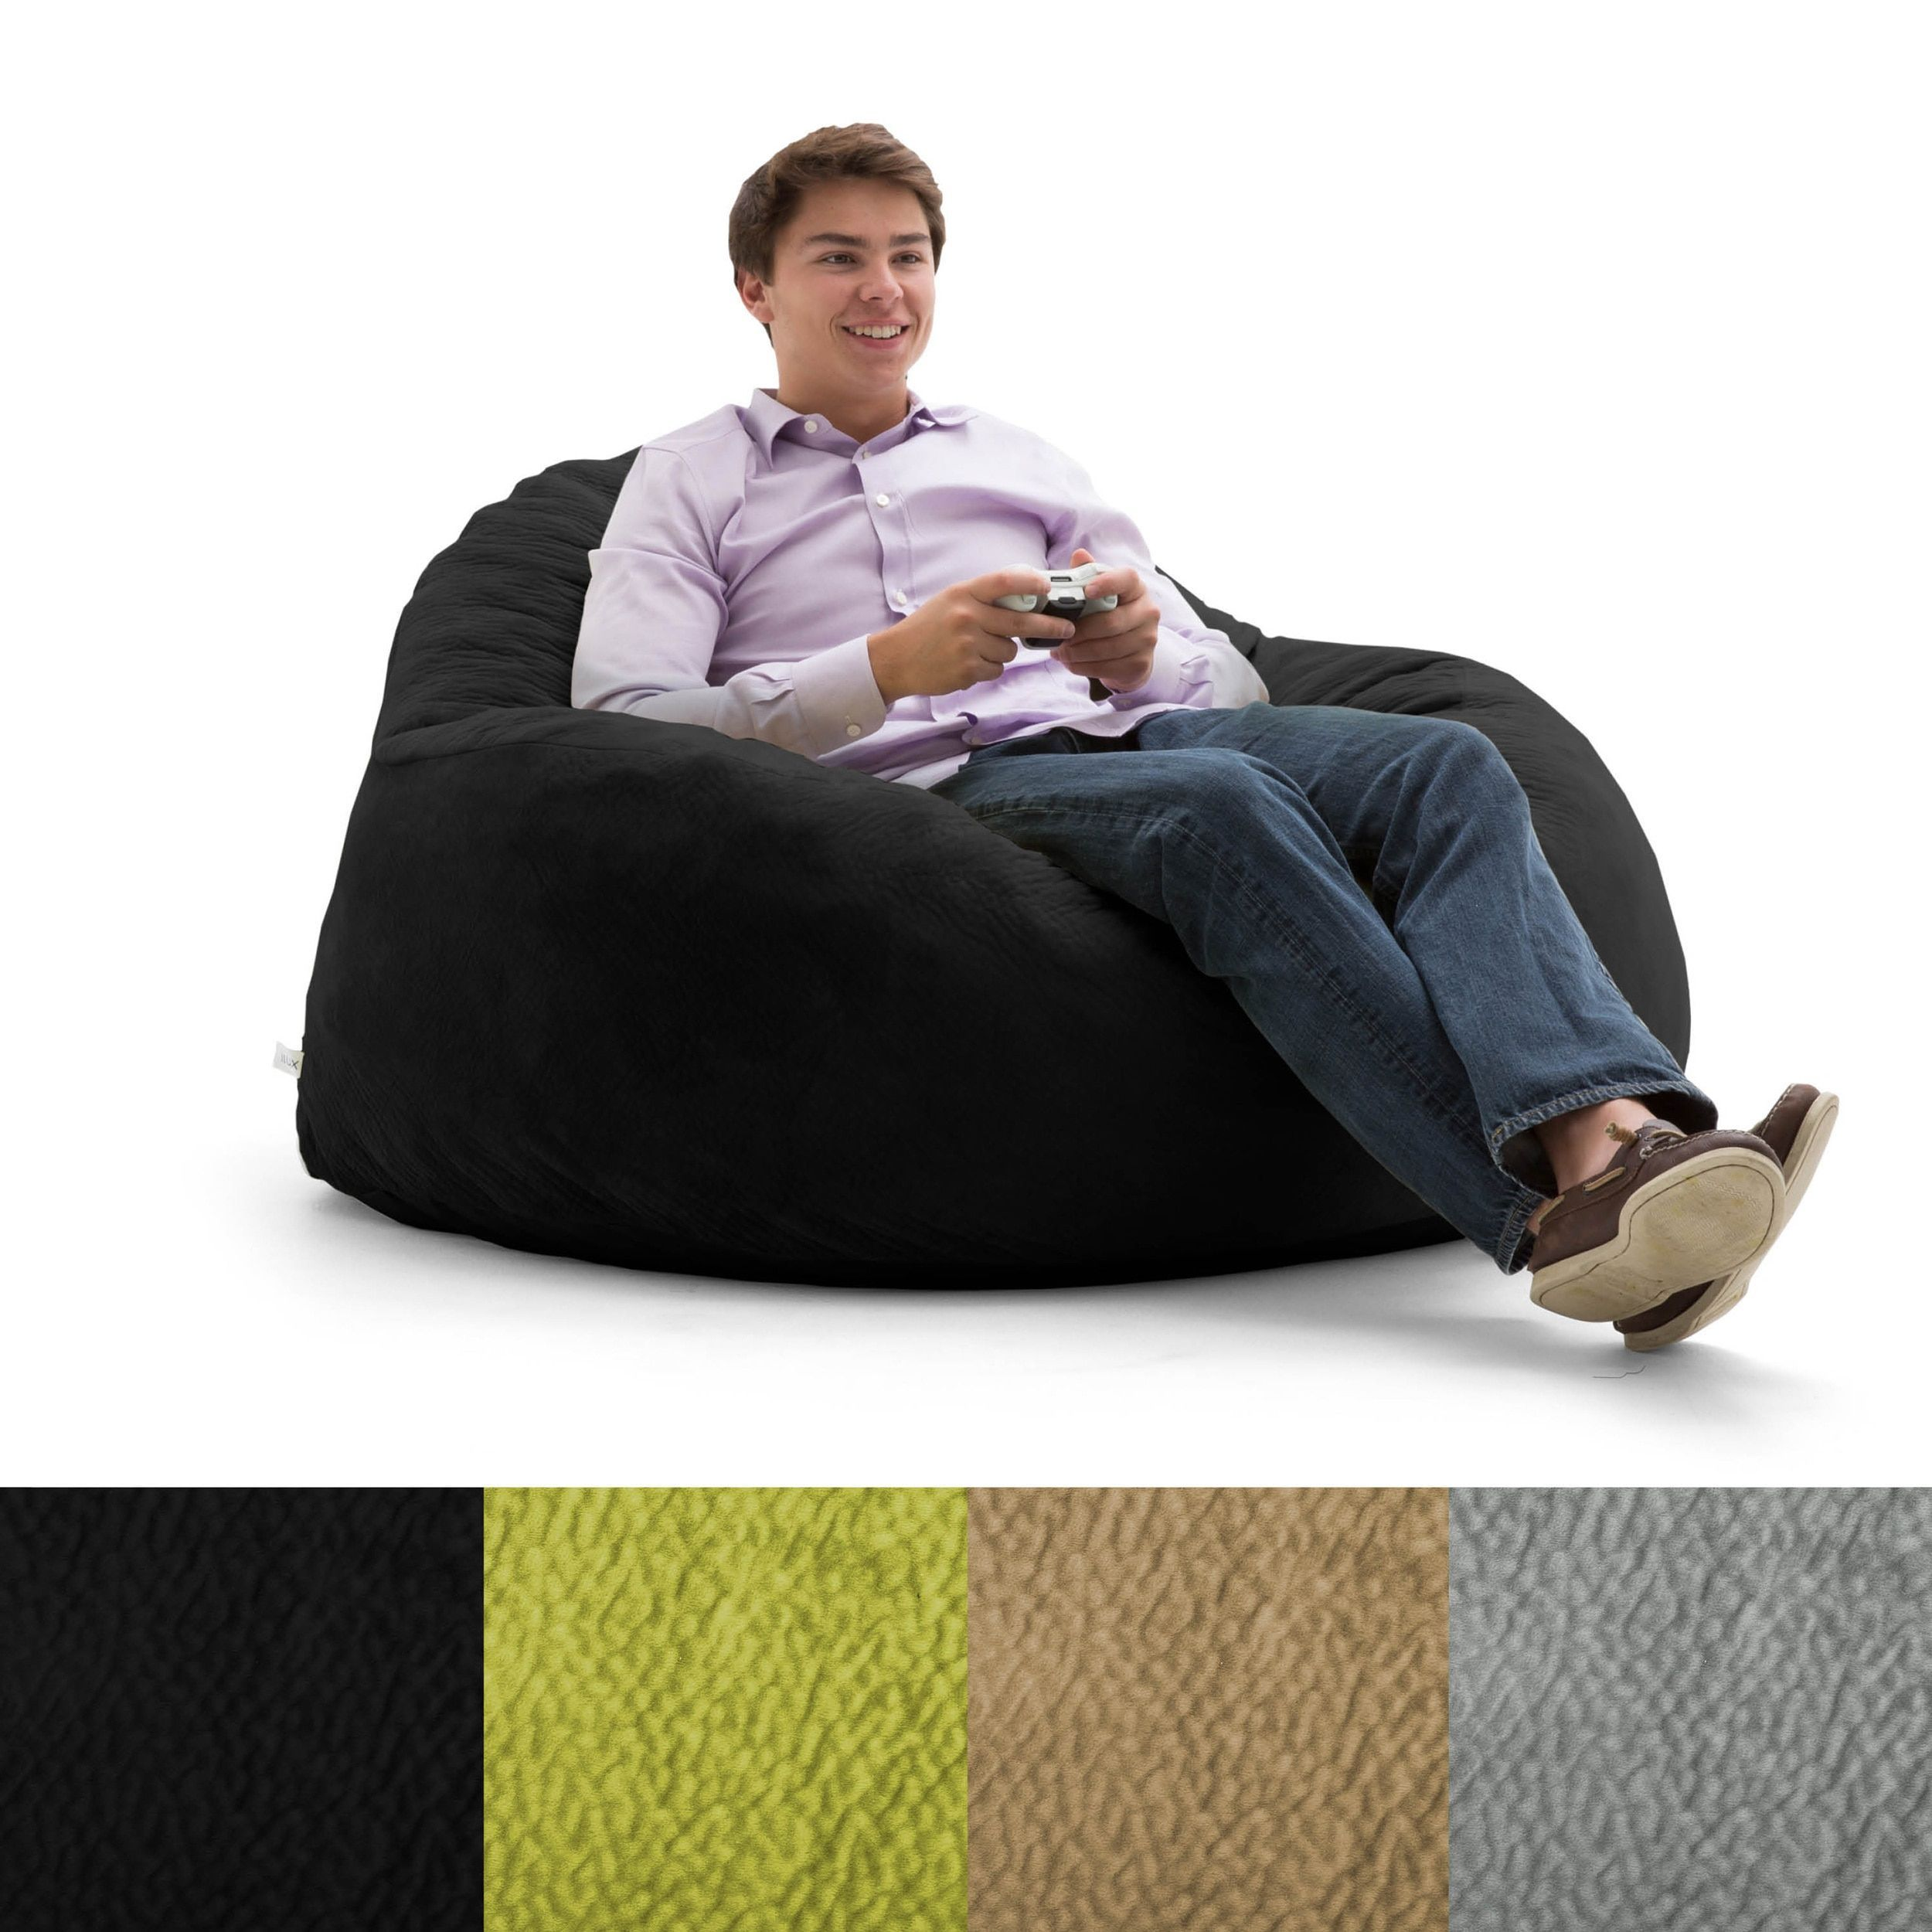 Super Fufsack Big Joe Lux Chillum Textured Memory Foam Bean Bag Dailytribune Chair Design For Home Dailytribuneorg